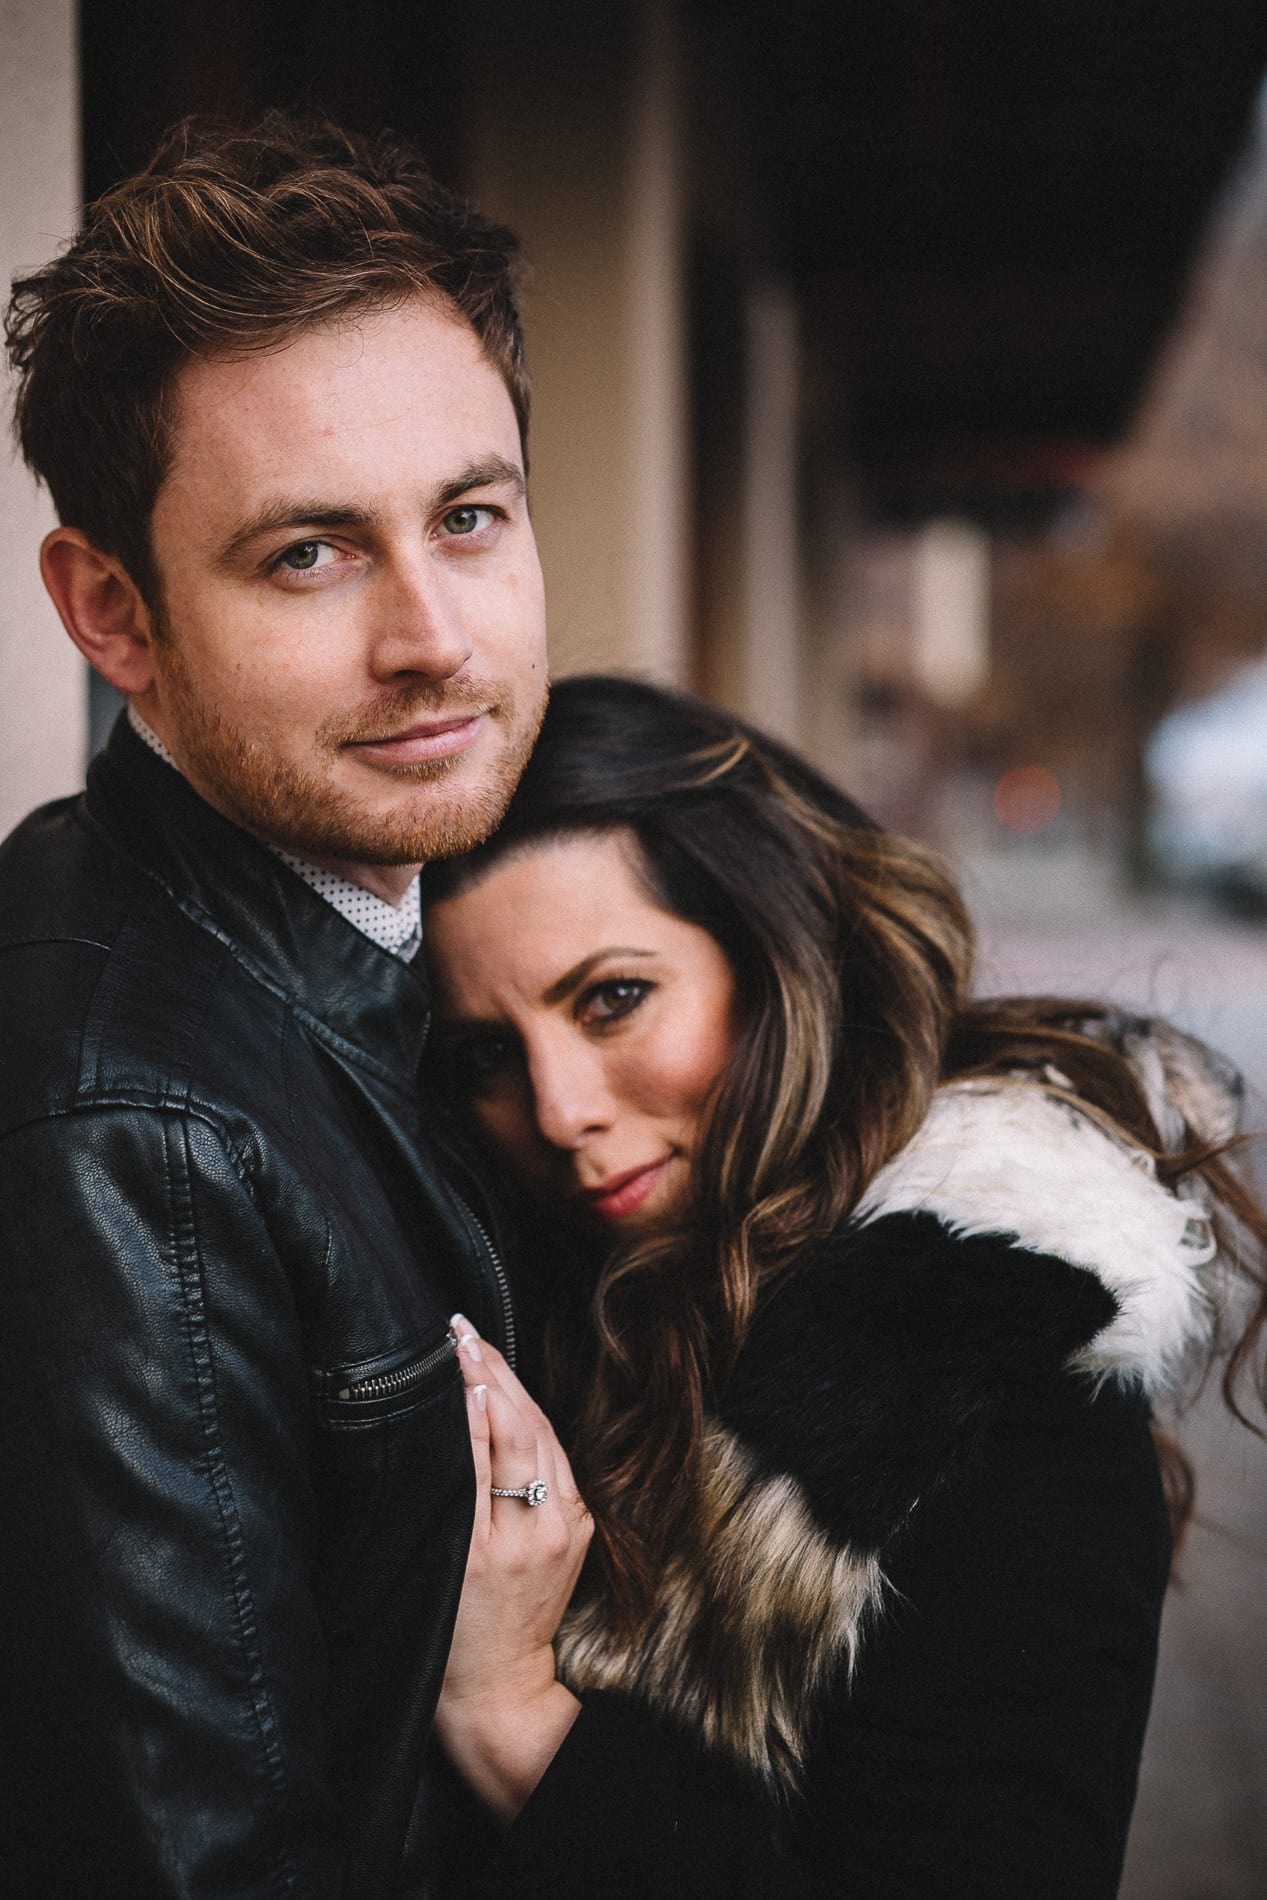 vintage-wine-bar-downtown-redding-engagement-photo-11